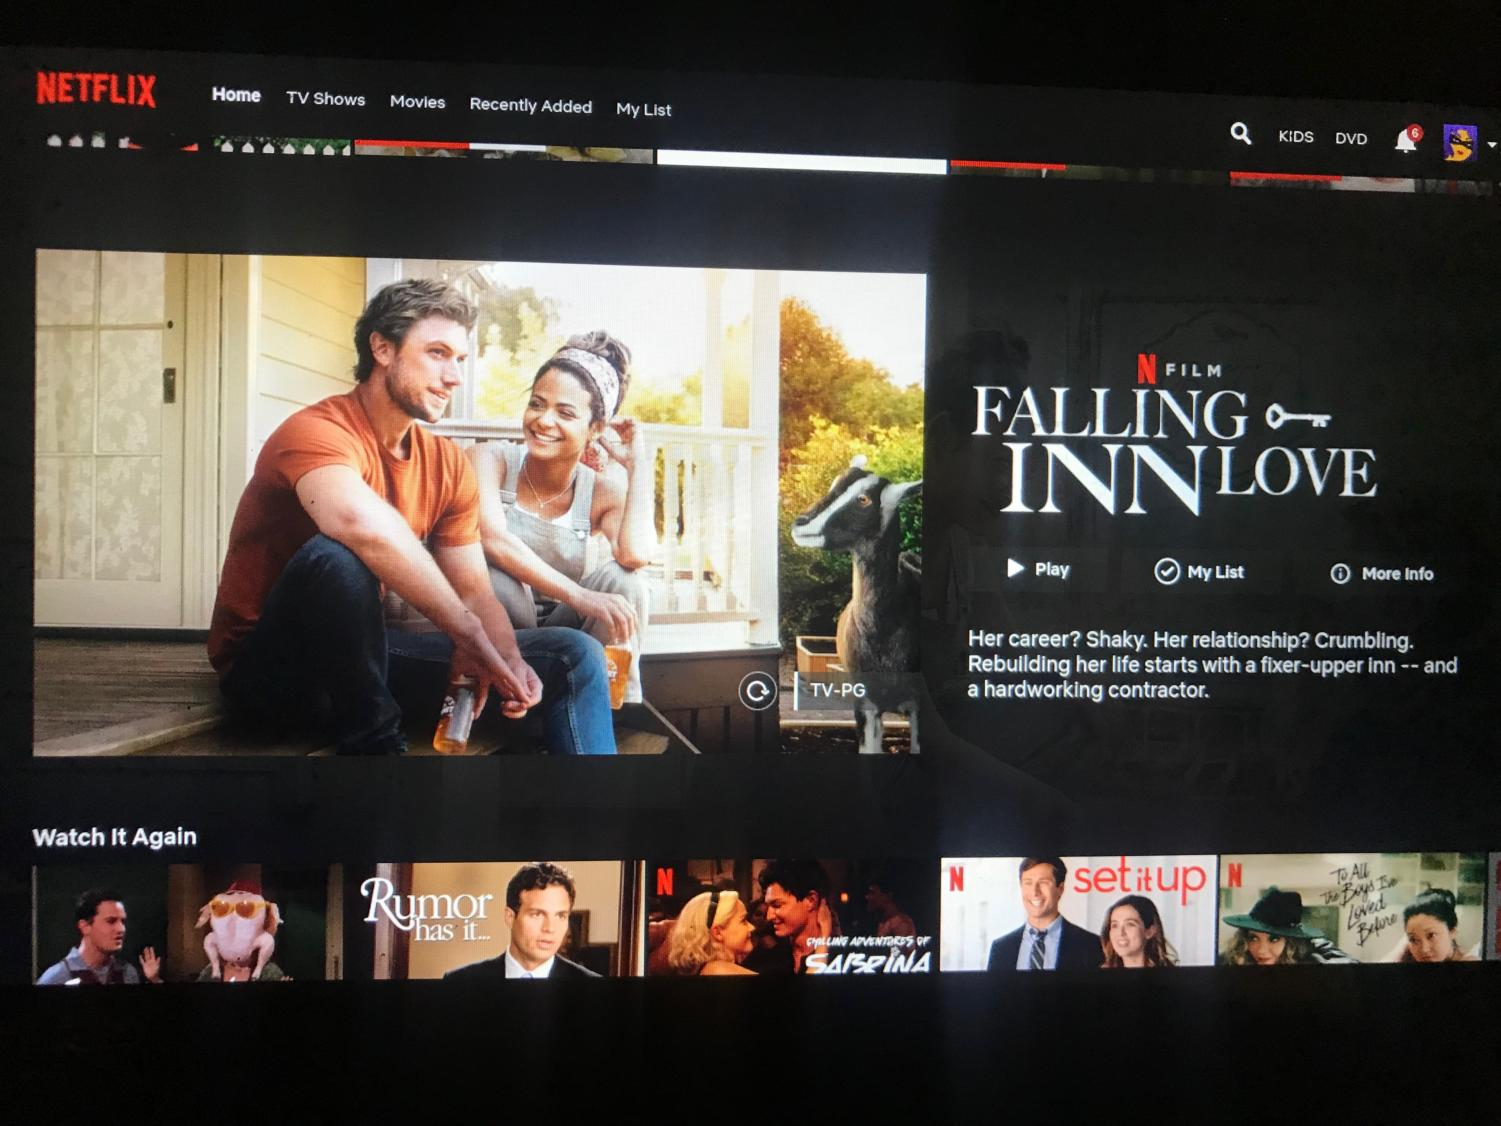 Netflix's latest attempt at a romance movie falls flat on its face.